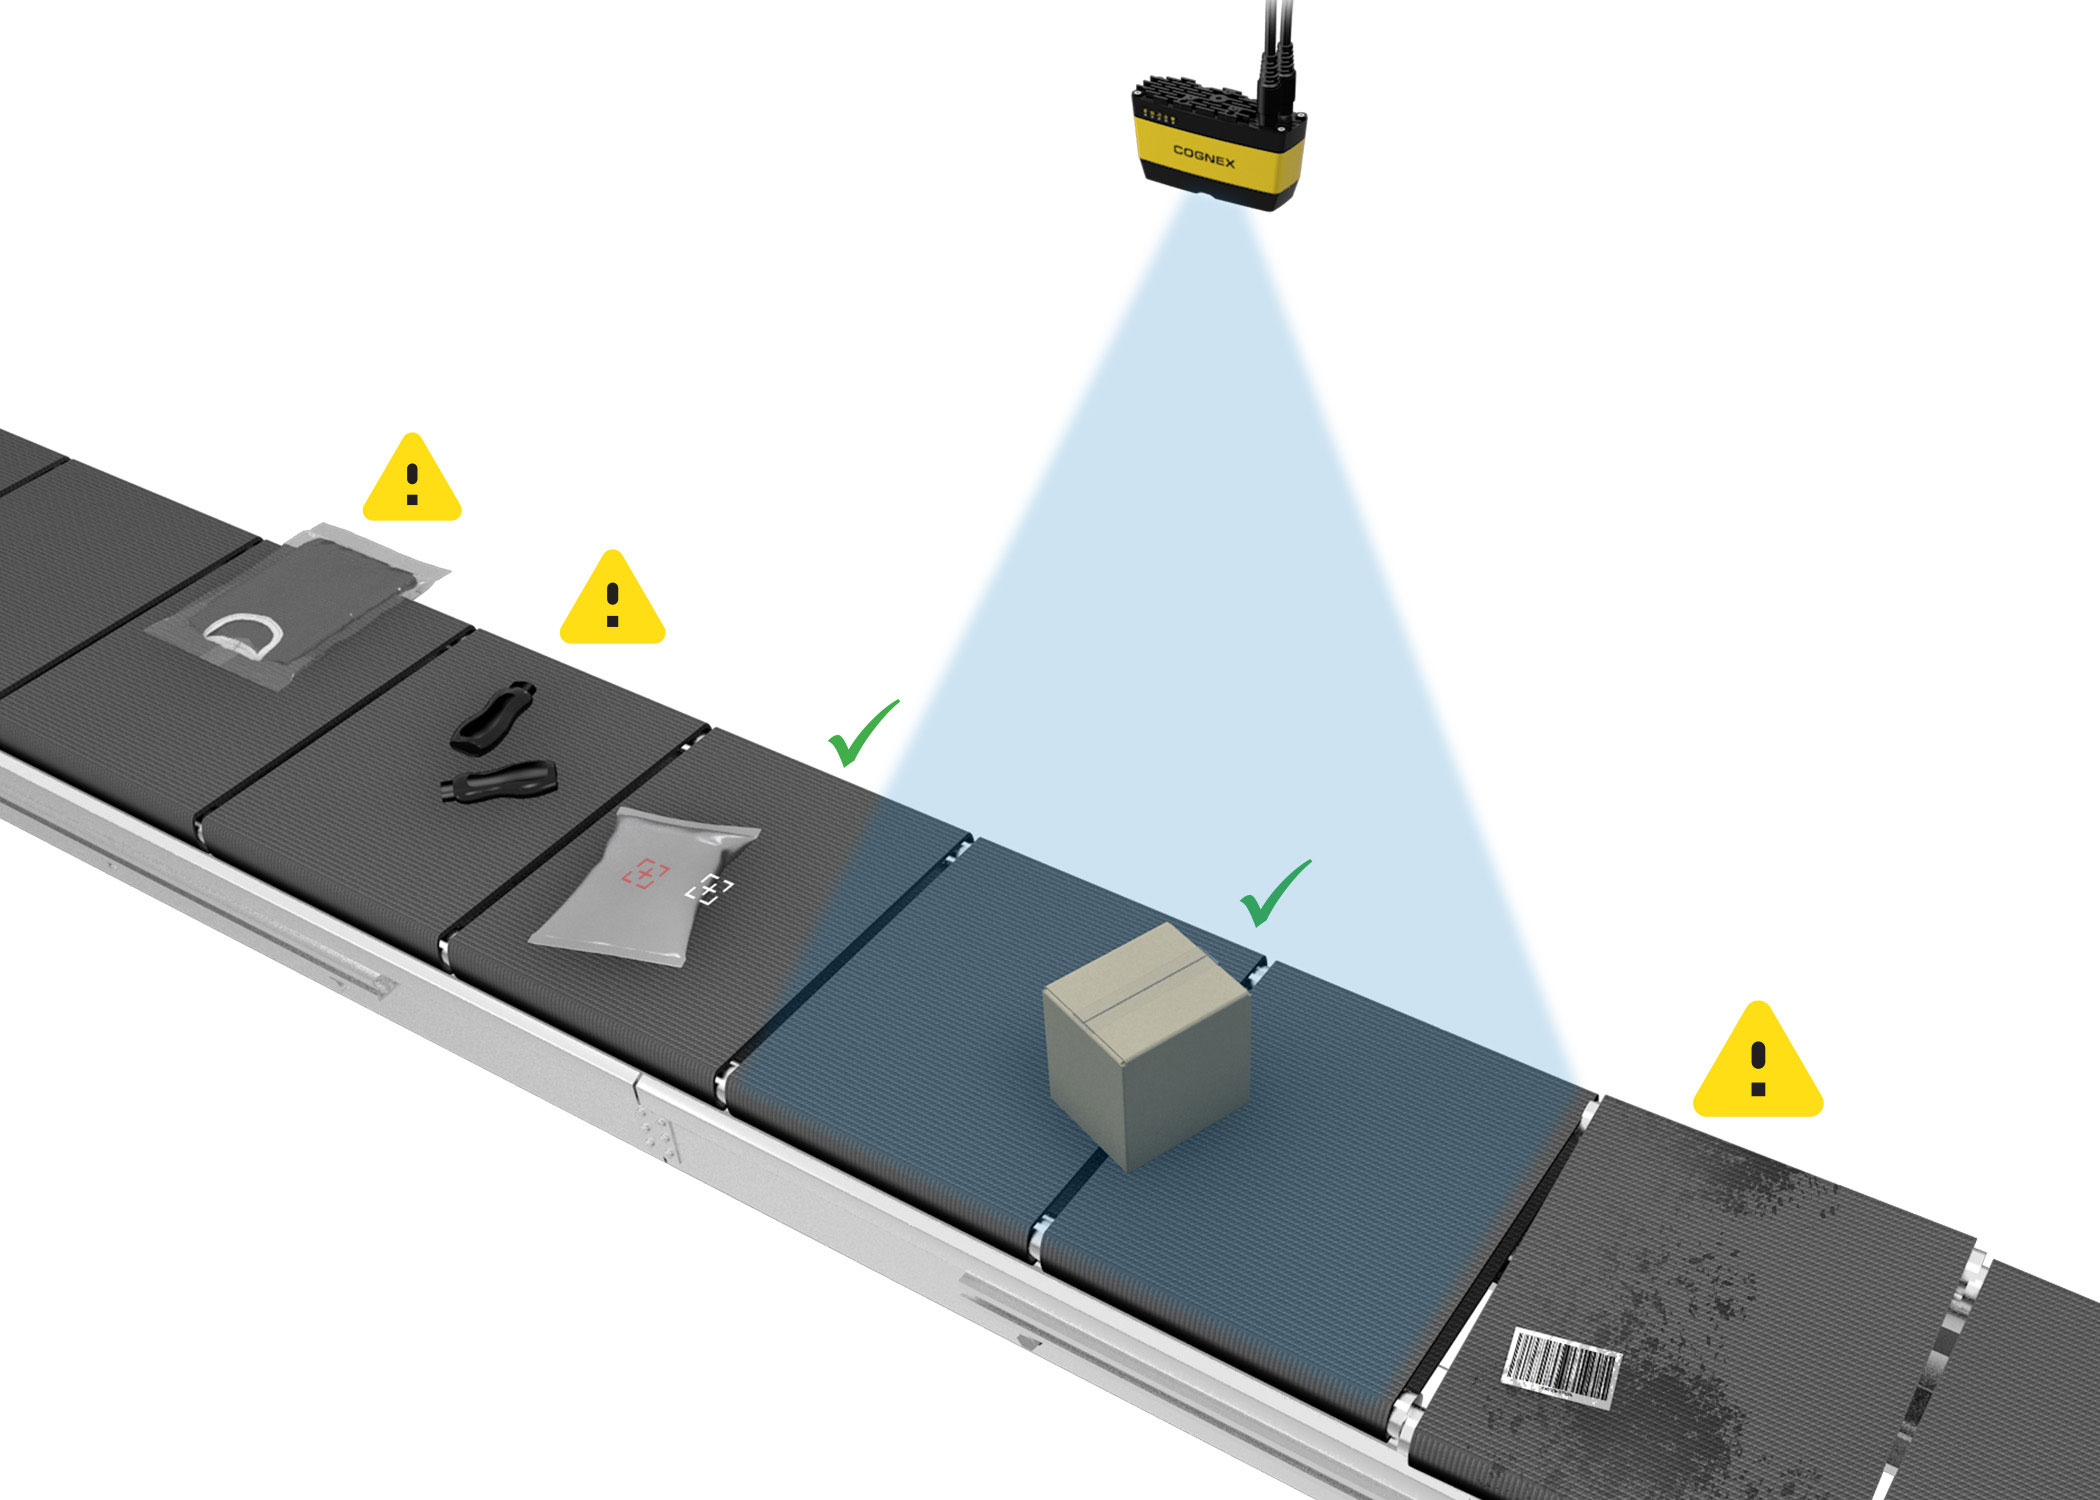 3D-A1000 Item Detection image